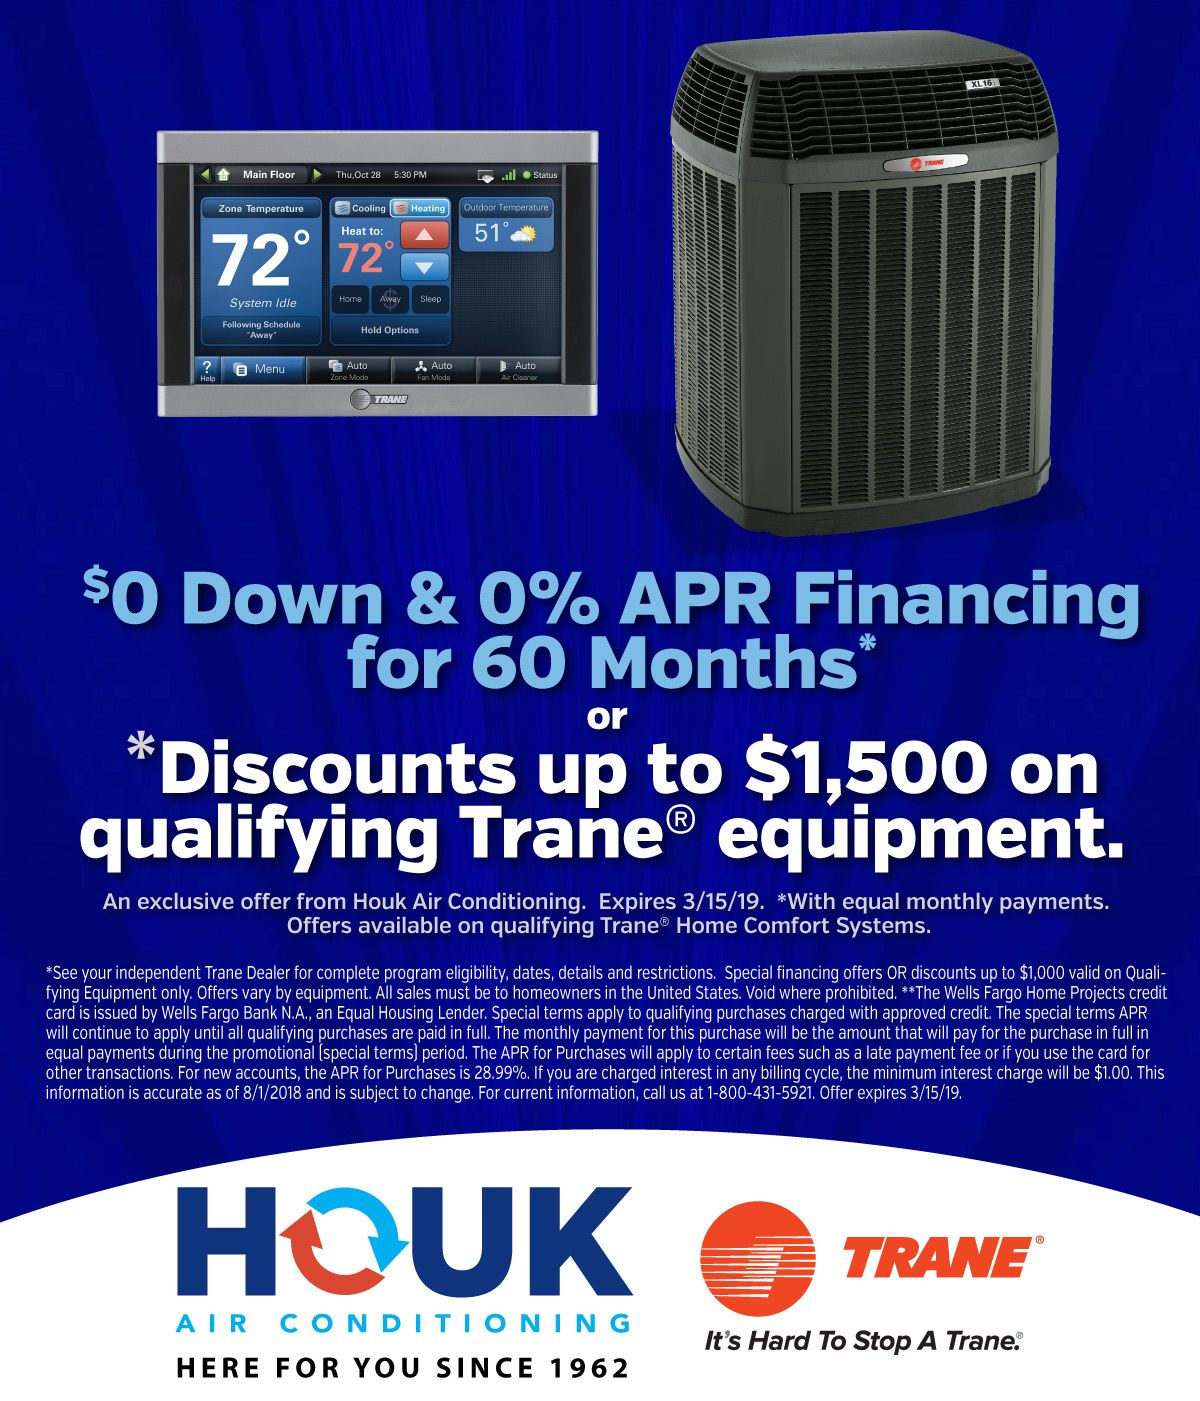 Pin By Kane Willamson On Houk Ac Ac System Trane Discounted